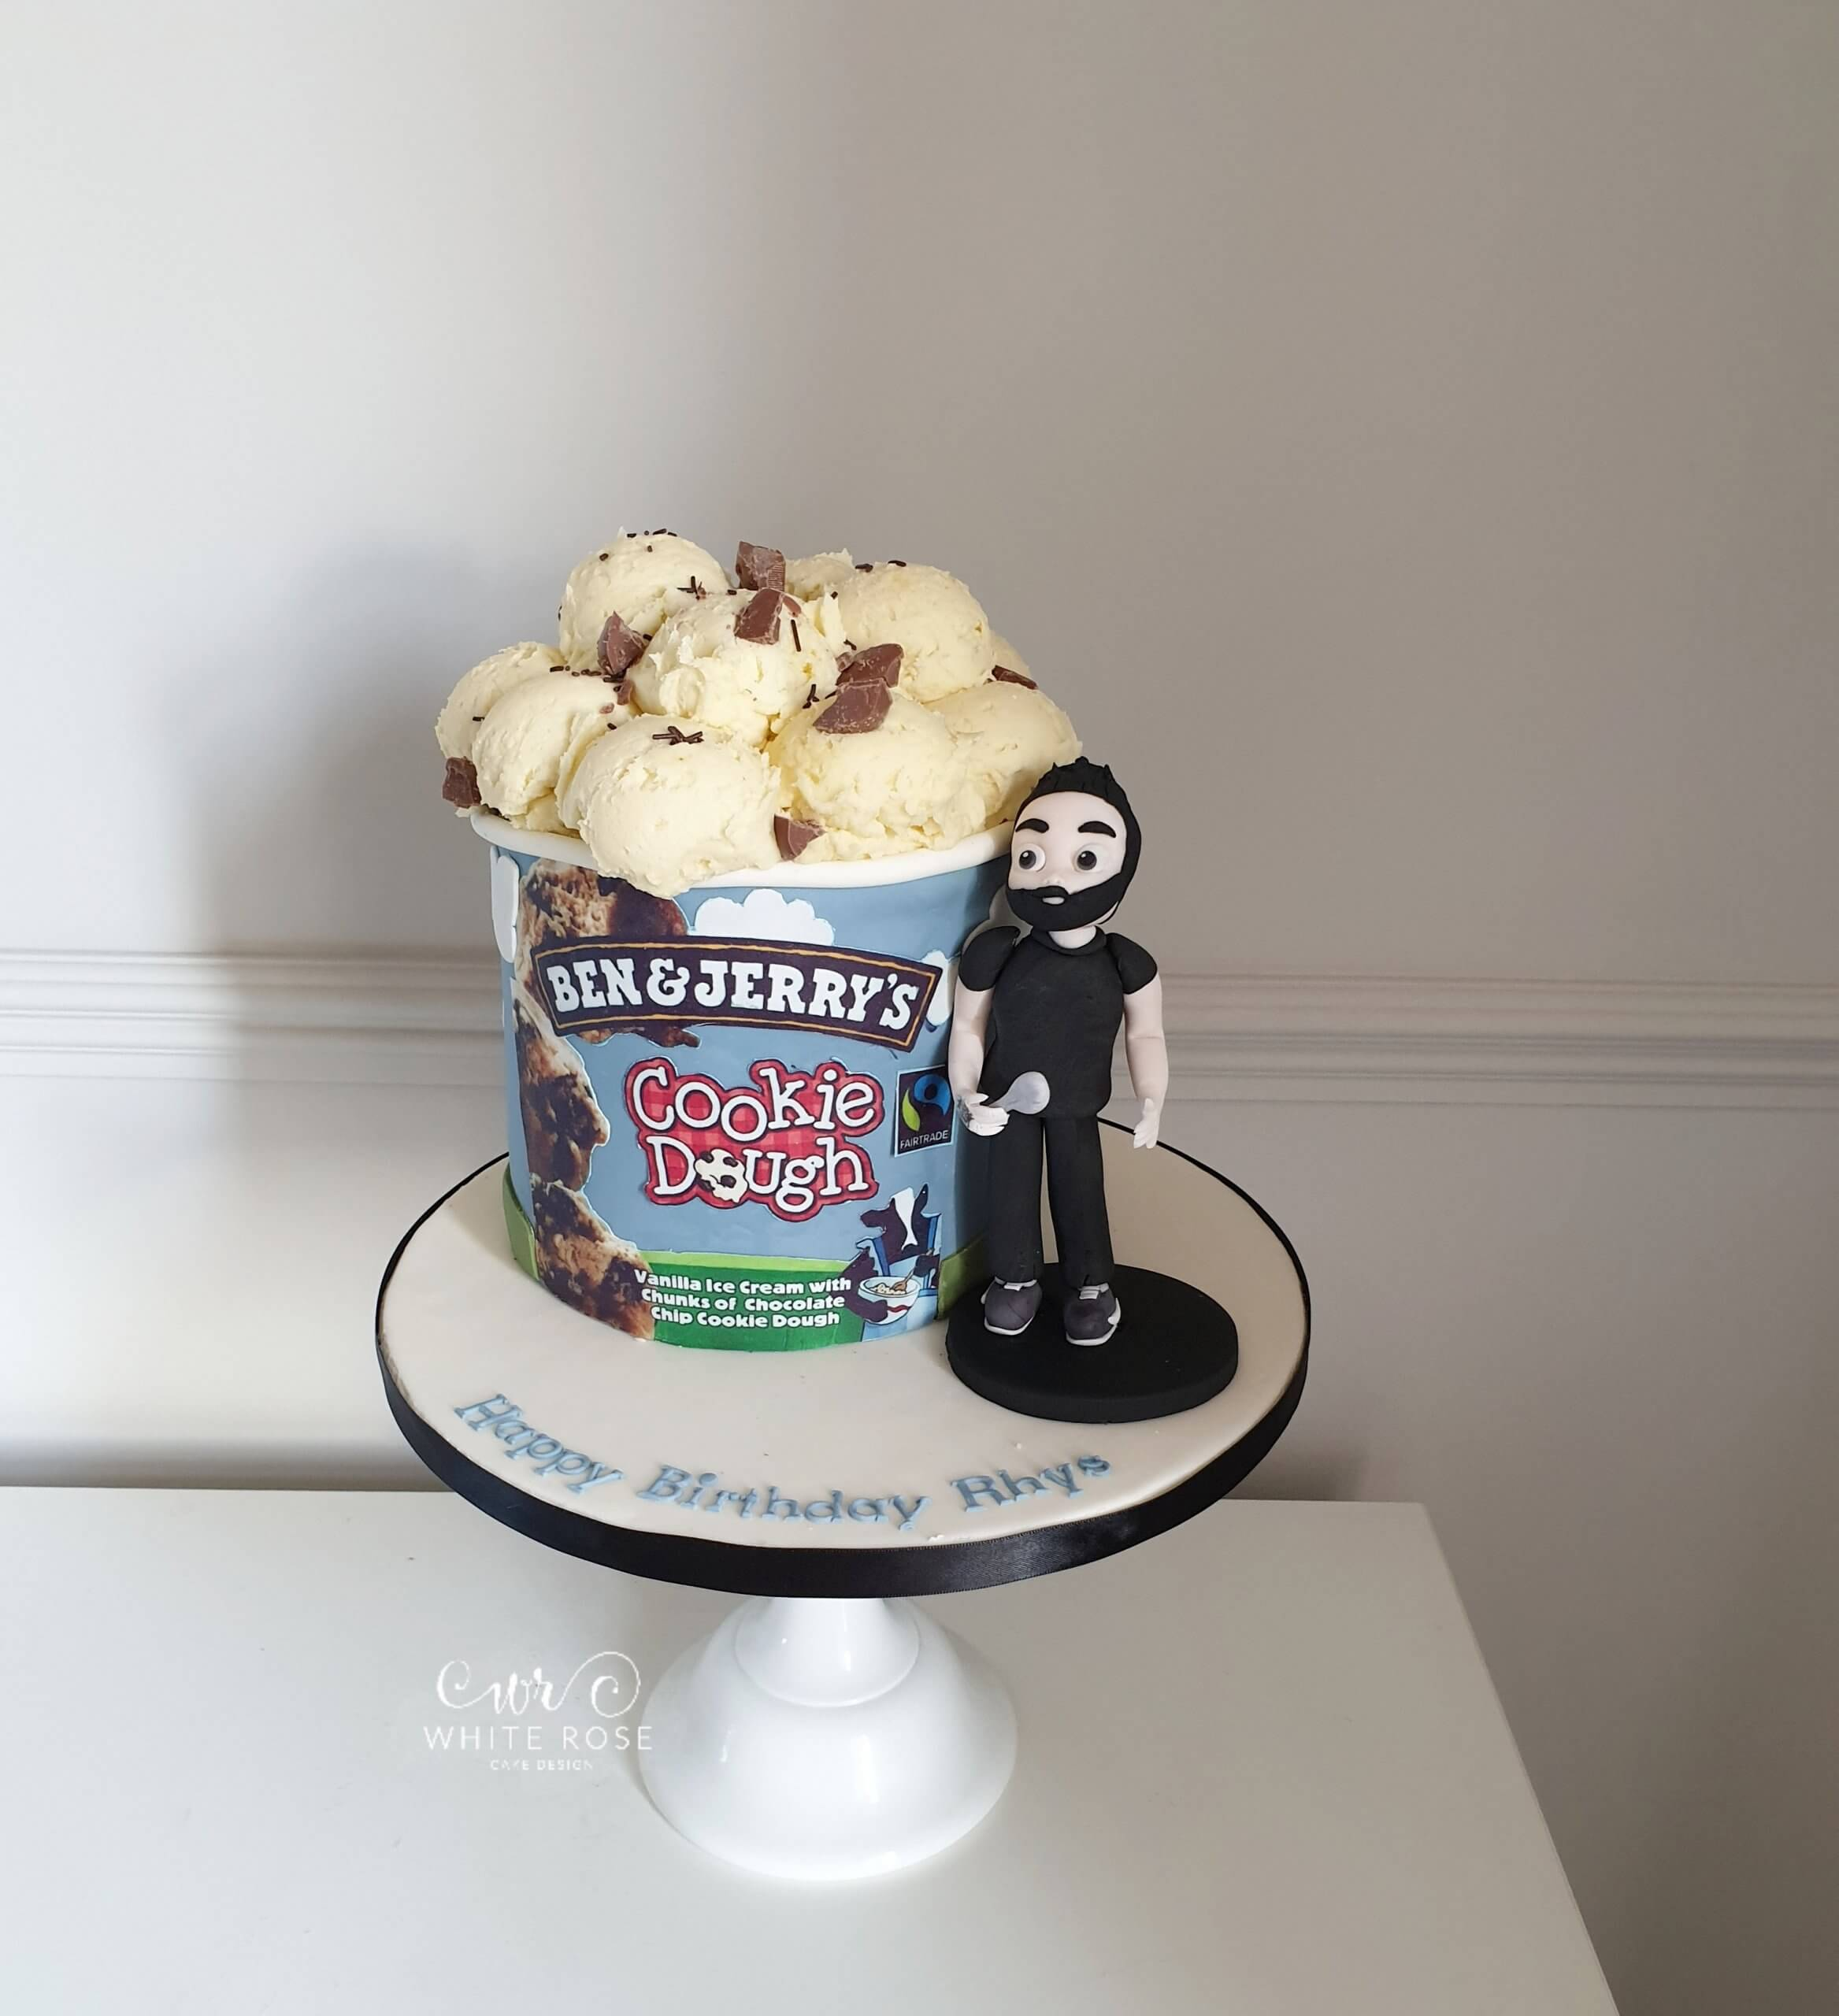 Ben & Jerry's Cookie Dough Ice Cream Tub BIrthday Cake with Figure by White Rose Cake Design - Birthday Cakes in Holmfirth and Huddersfield